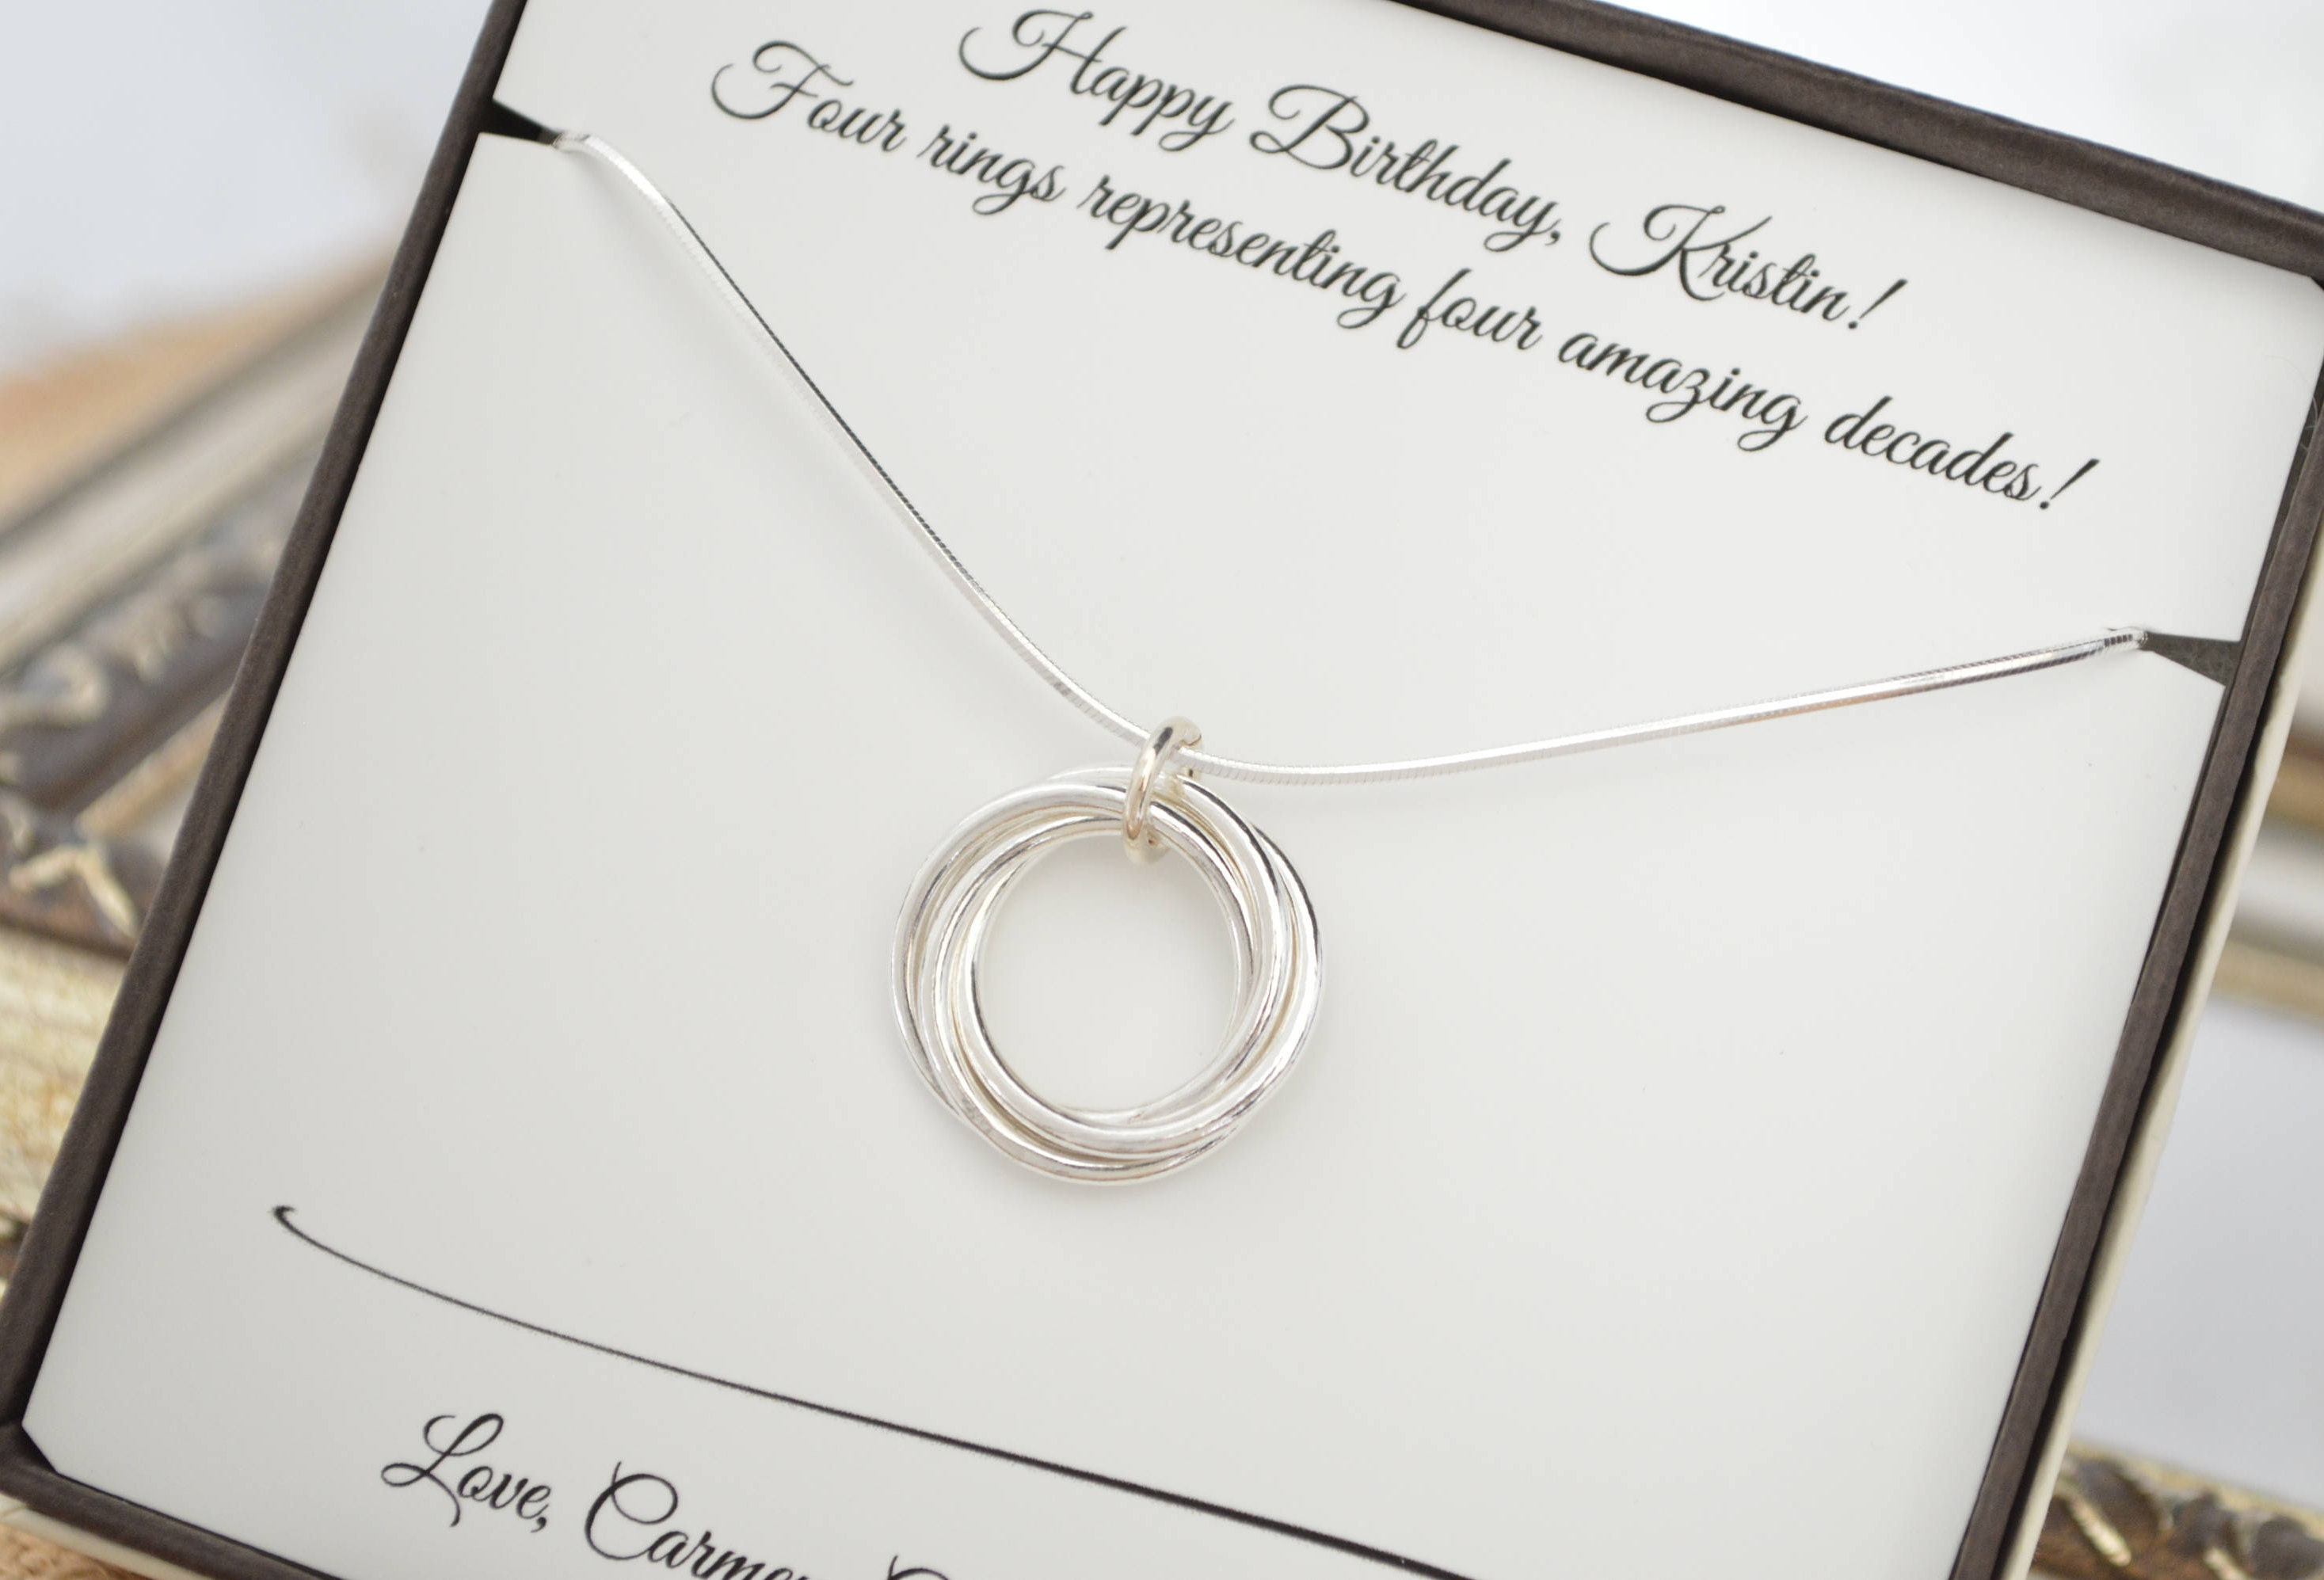 40th Wedding Anniversary Gifts For Friends: 40th Birthday Gift For Women, 4 Sisters Necklace, 4th